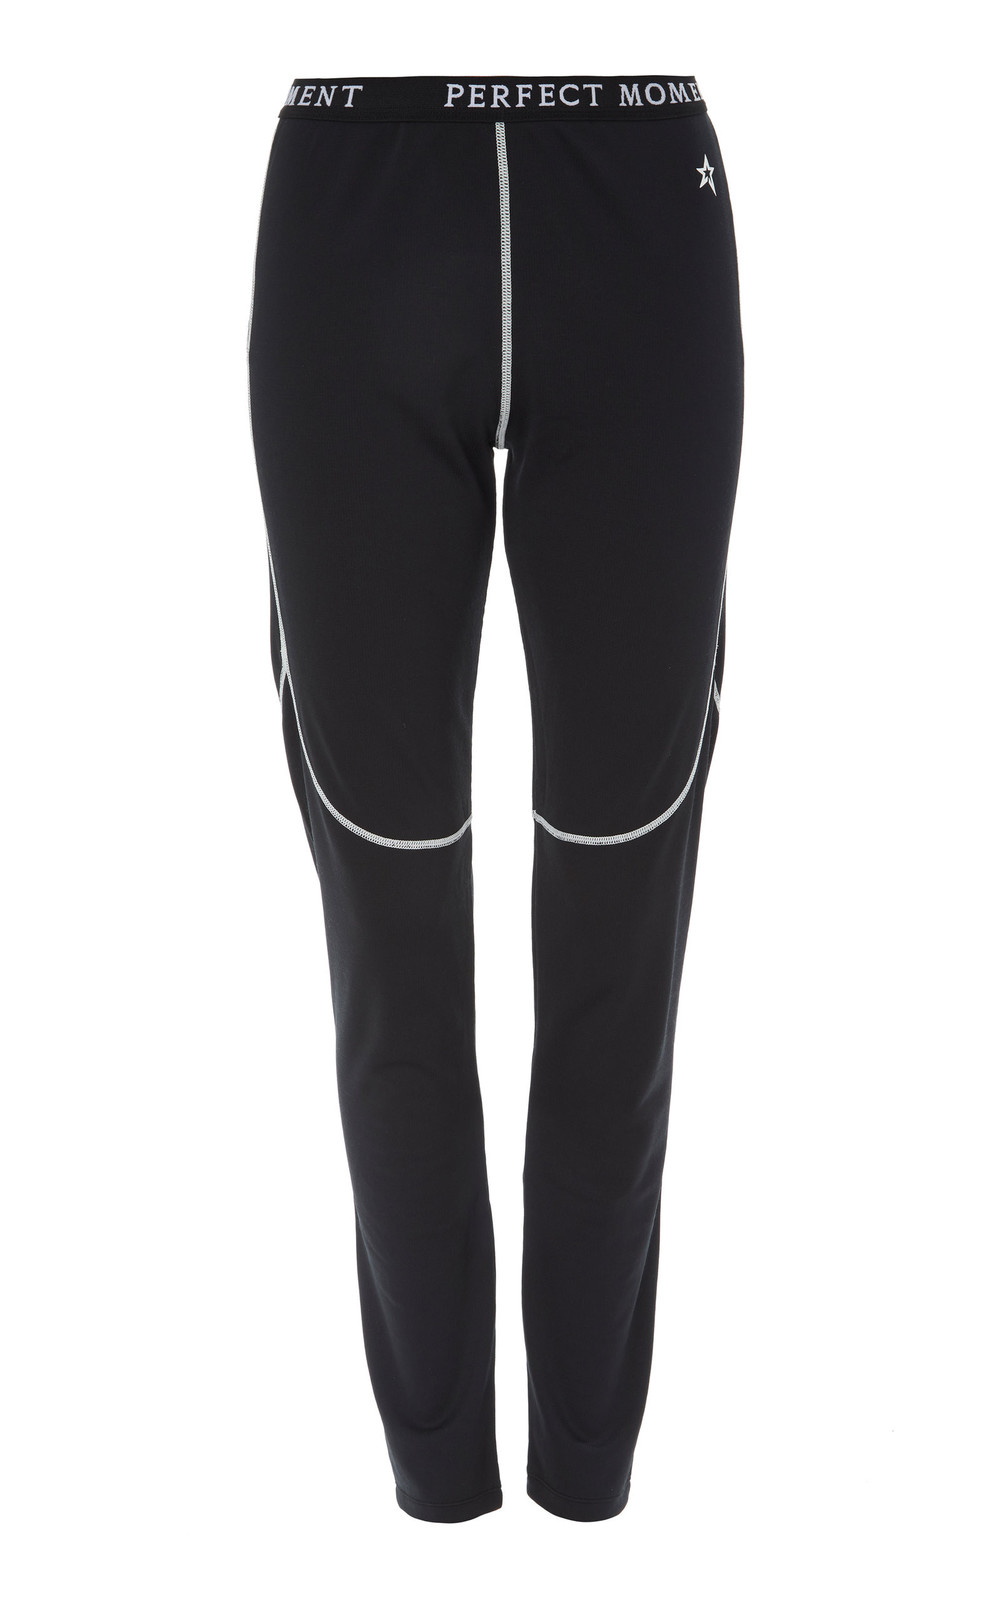 Perfect Moment Printed Stretch-Jersey Thermal Leggings in black